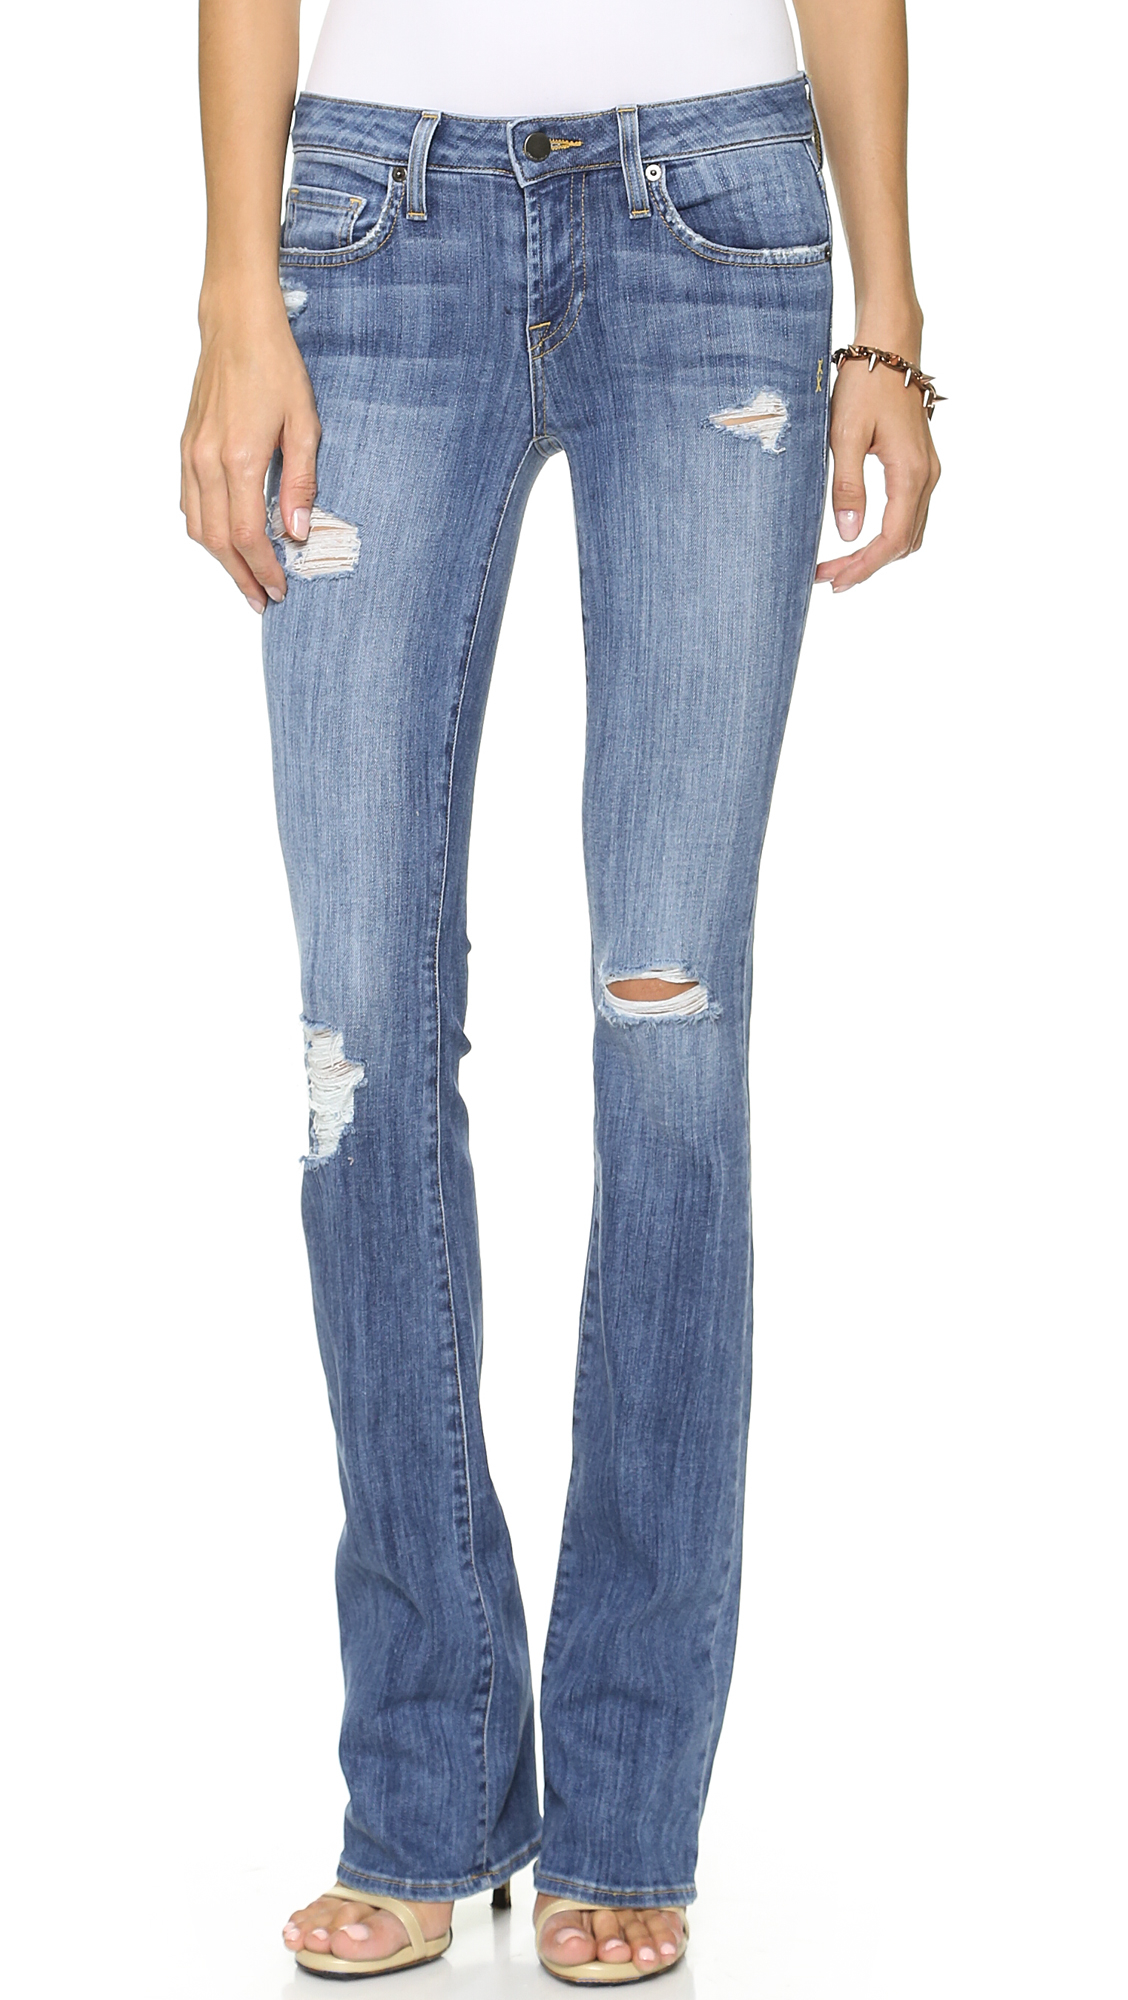 2f3bad571b8c Lyst - Genetic Denim Riley Slim Boot Cut Jeans - Summer Destroy in Blue